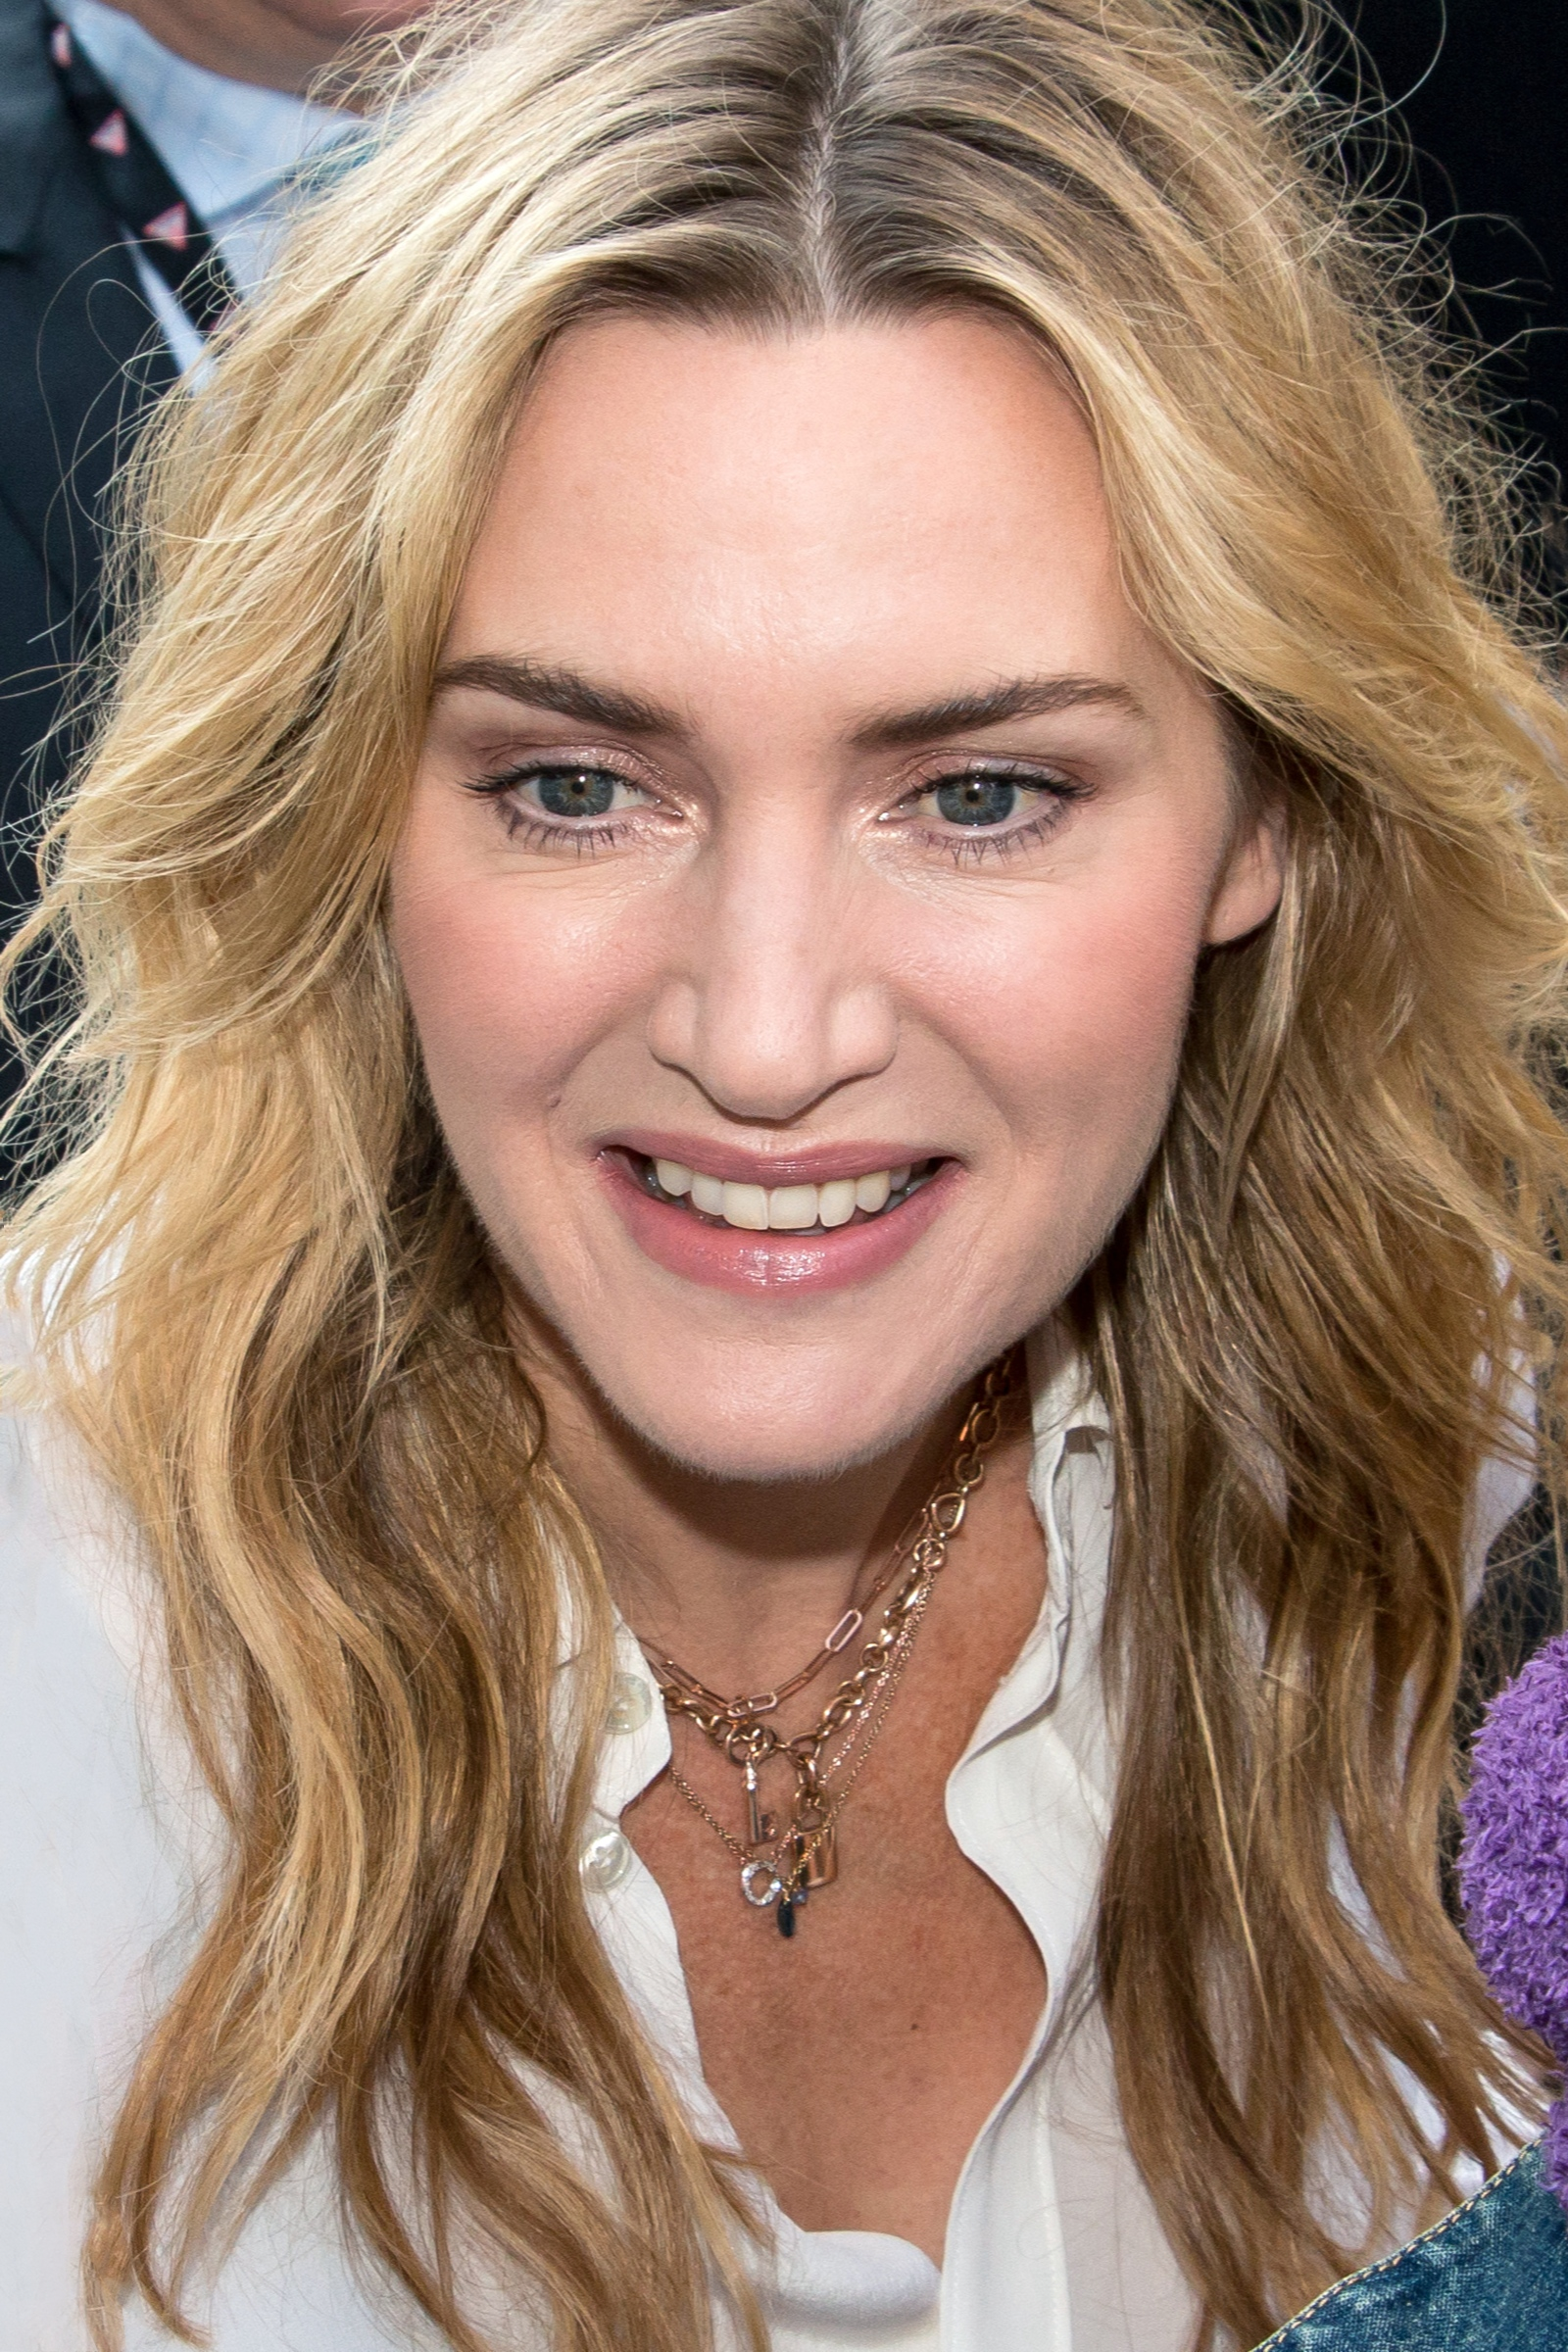 The 43-year old daughter of father Roger John Winslet and mother Sally Anne Winslet Kate Winslet in 2019 photo. Kate Winslet earned a  million dollar salary - leaving the net worth at 45 million in 2019